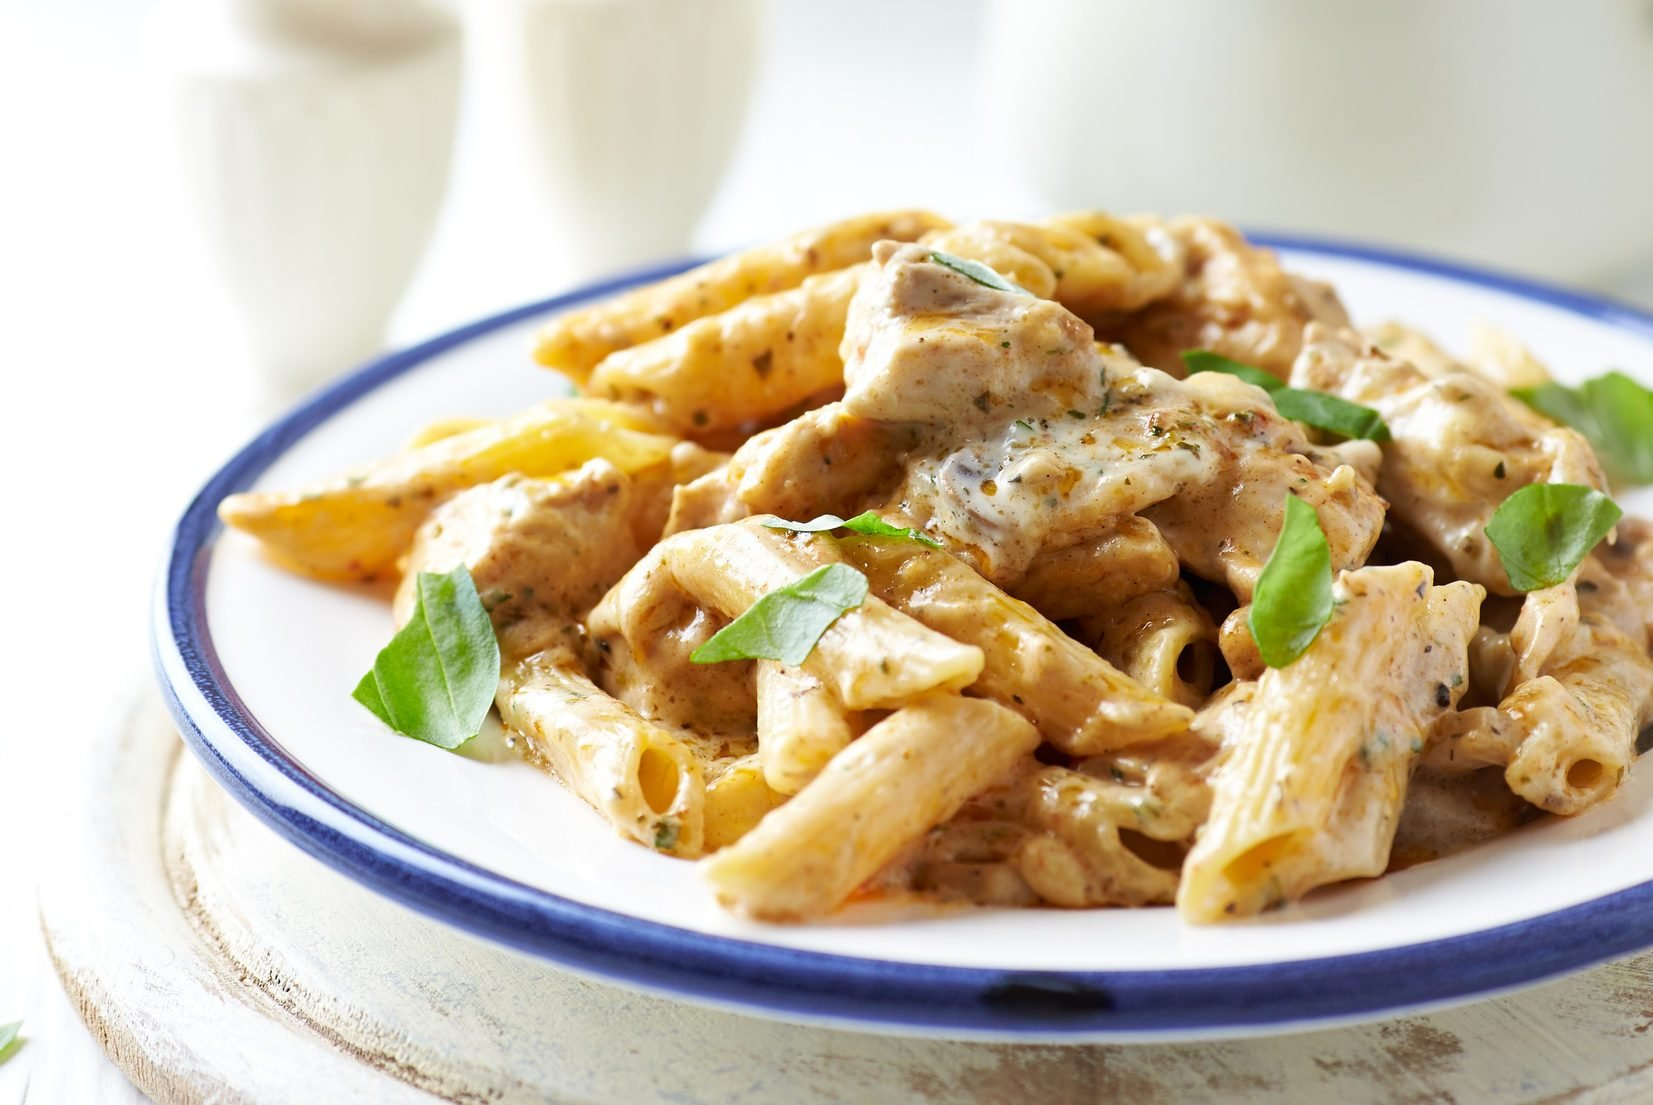 Penne with chicken and cheese sauce